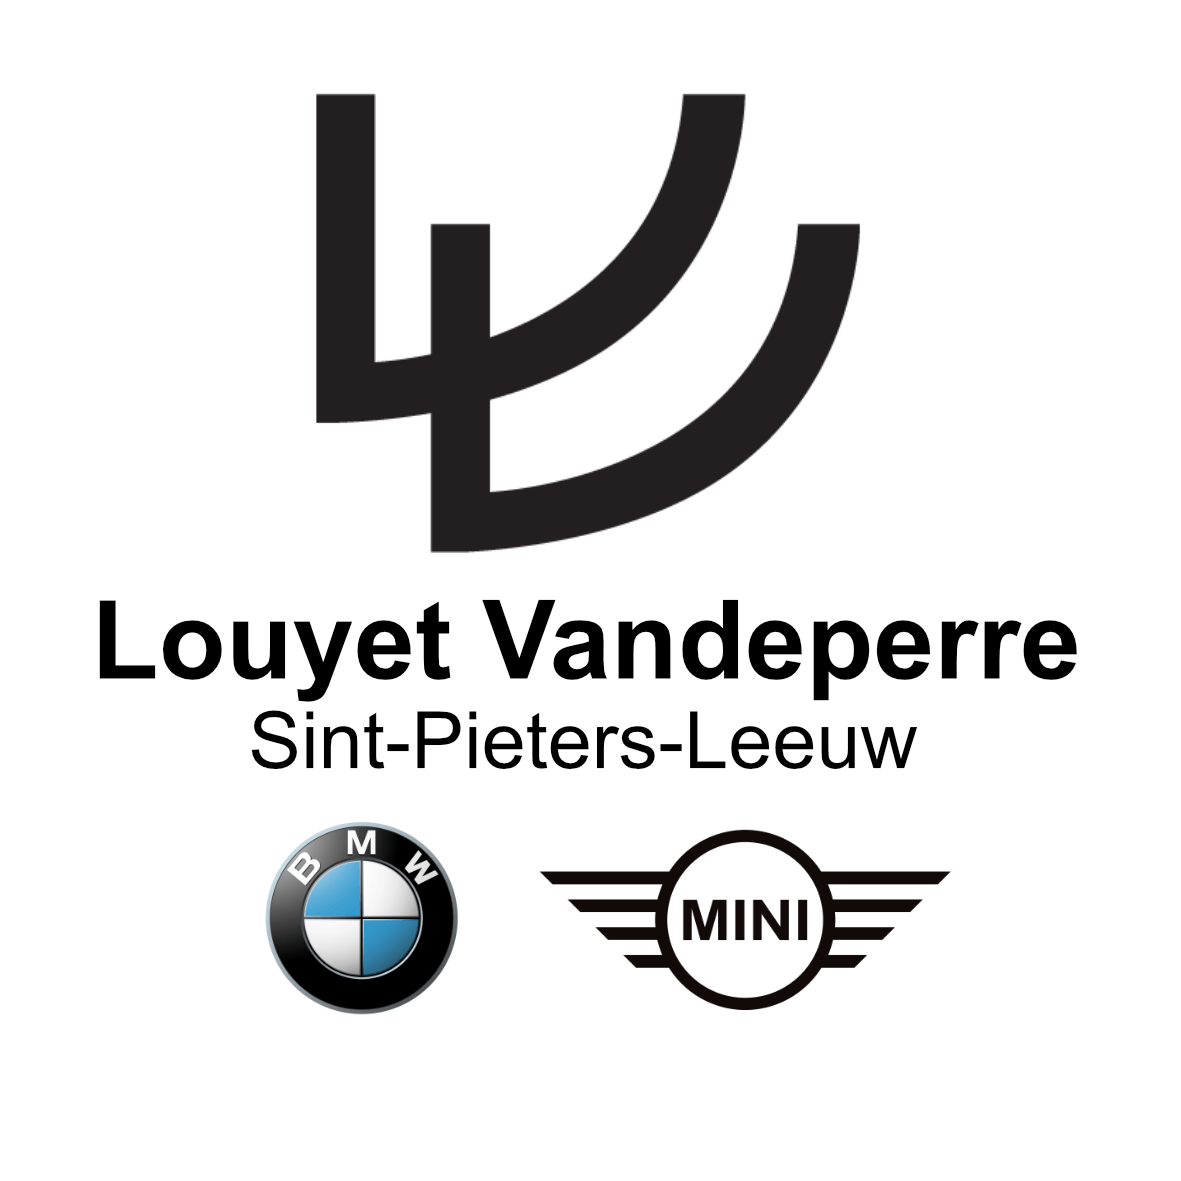 mini louyet vandeperre  u2013 fleet be